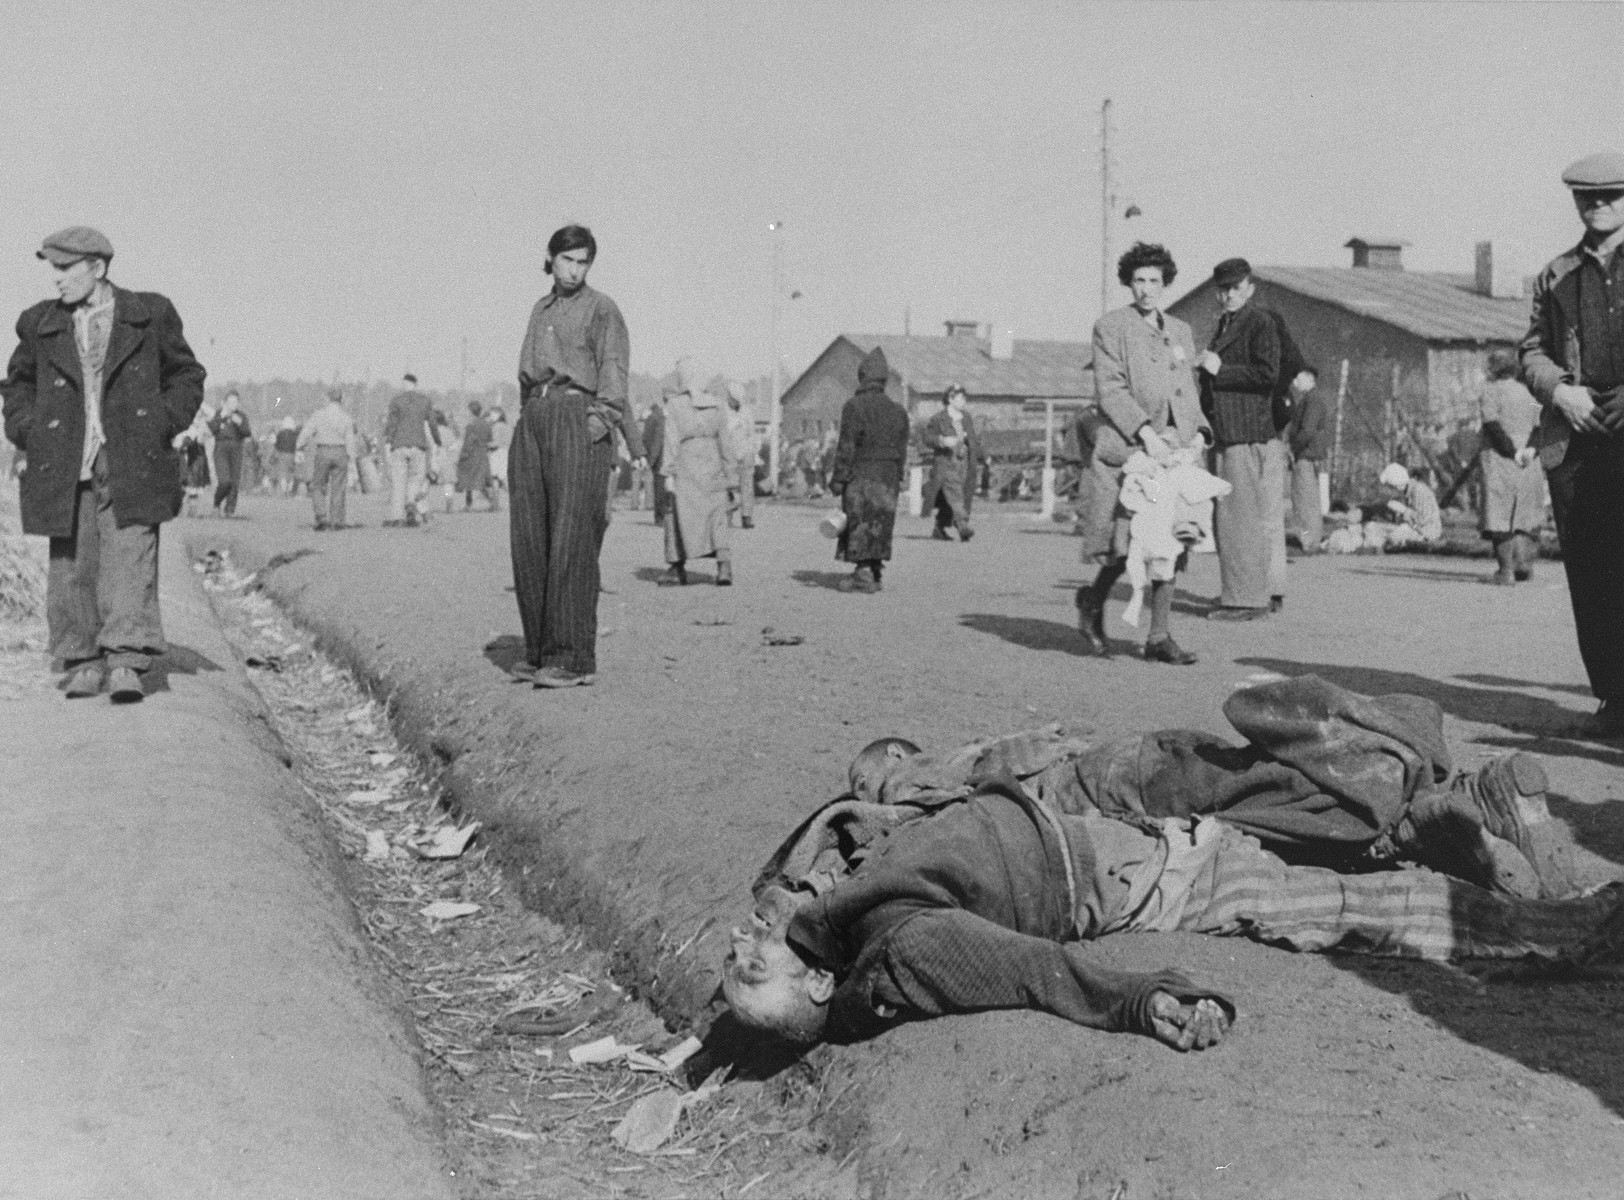 Corpses lying amongst survivors in Bergen-Belsen.